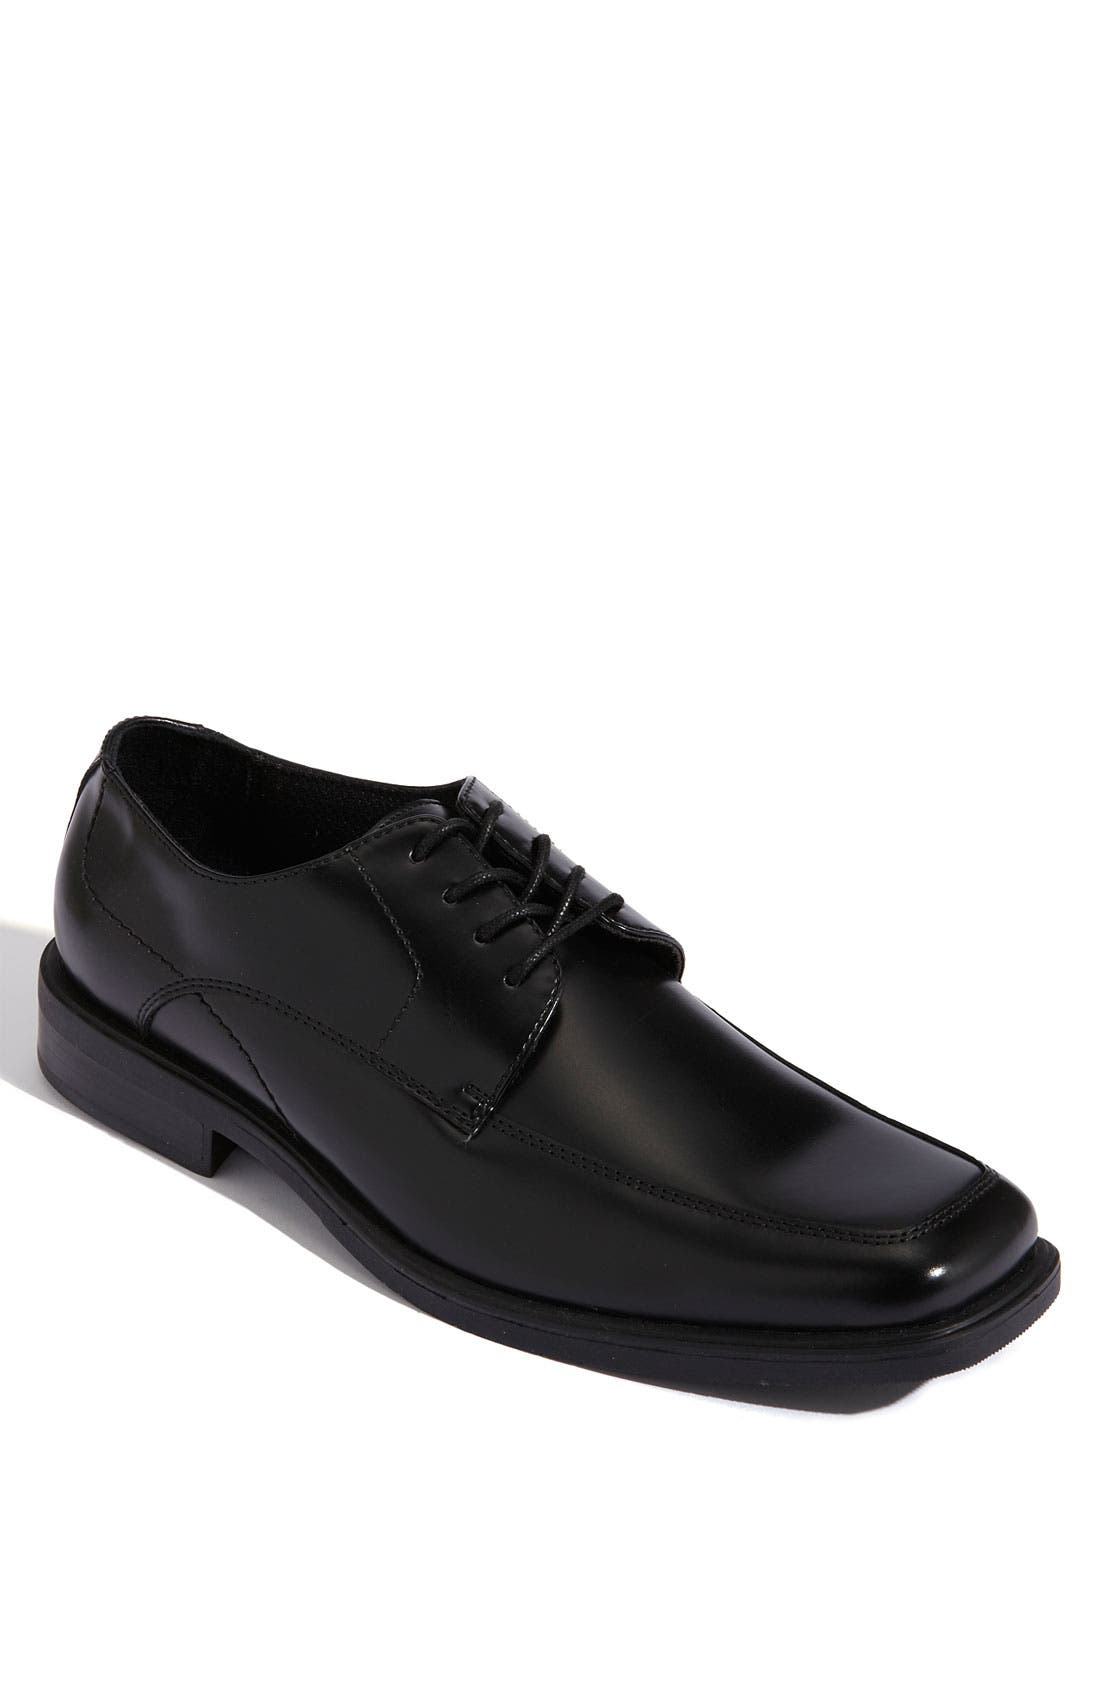 Main Image - Kenneth Cole Reaction 'Serve Ice Based' Oxford